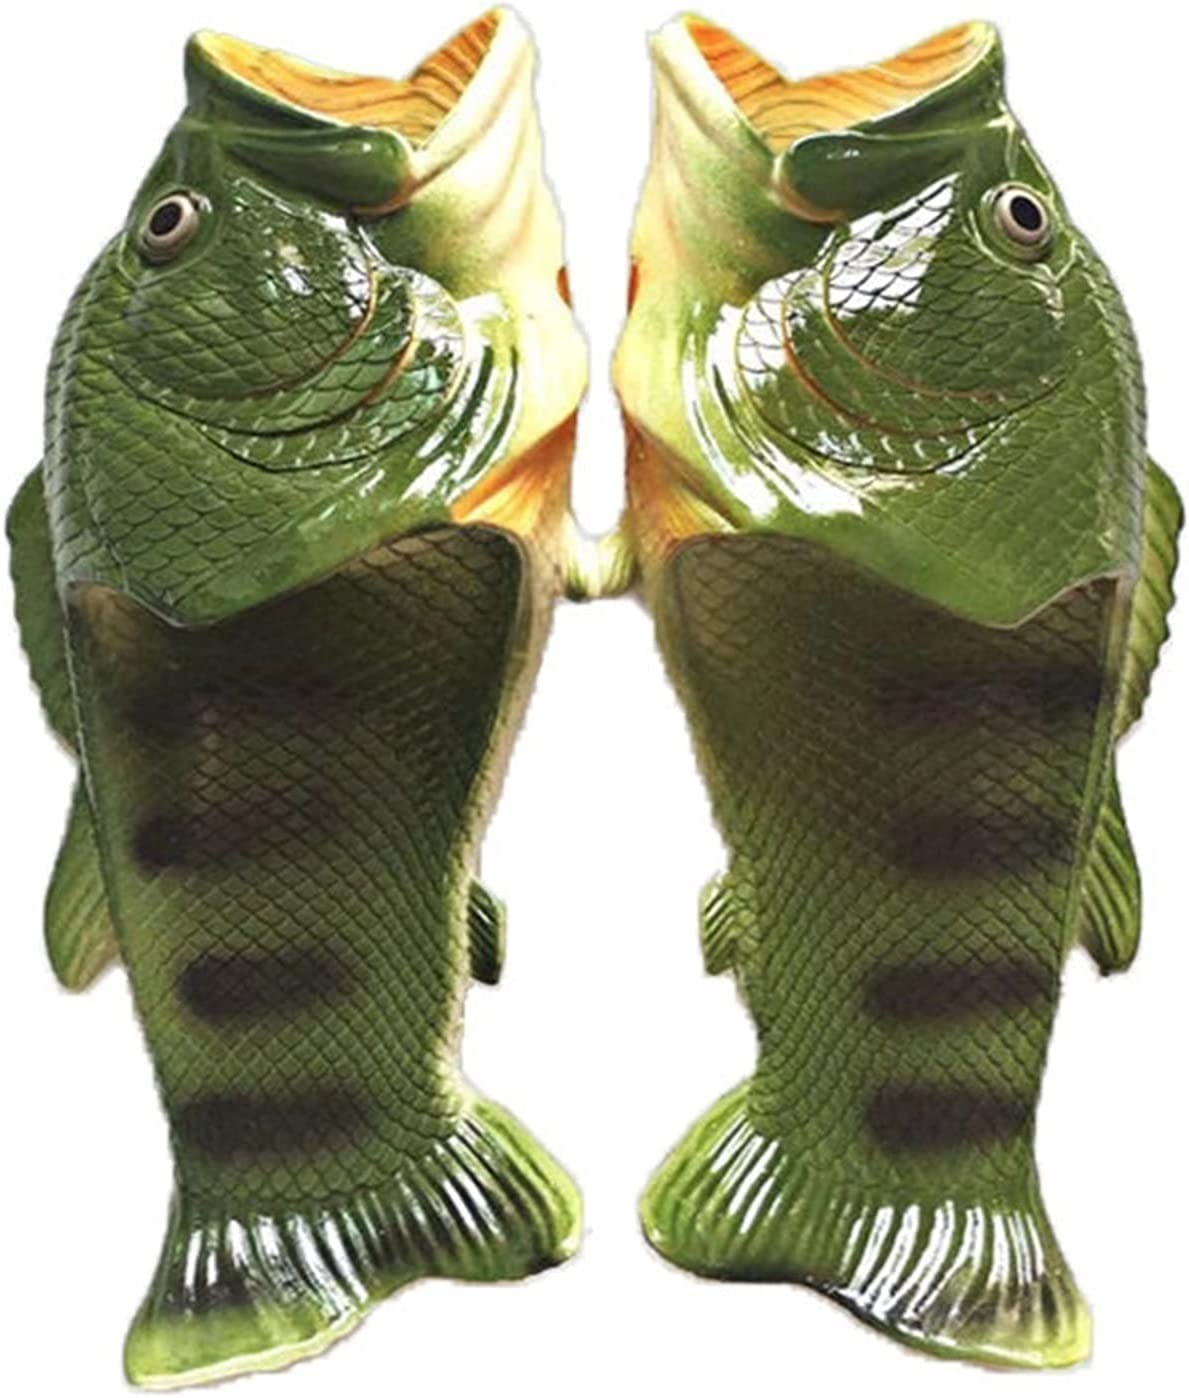 Clearance SALE! Limited time! QUNHU Fish Animal New product type Slippers,The Gi Funny Slippers Original